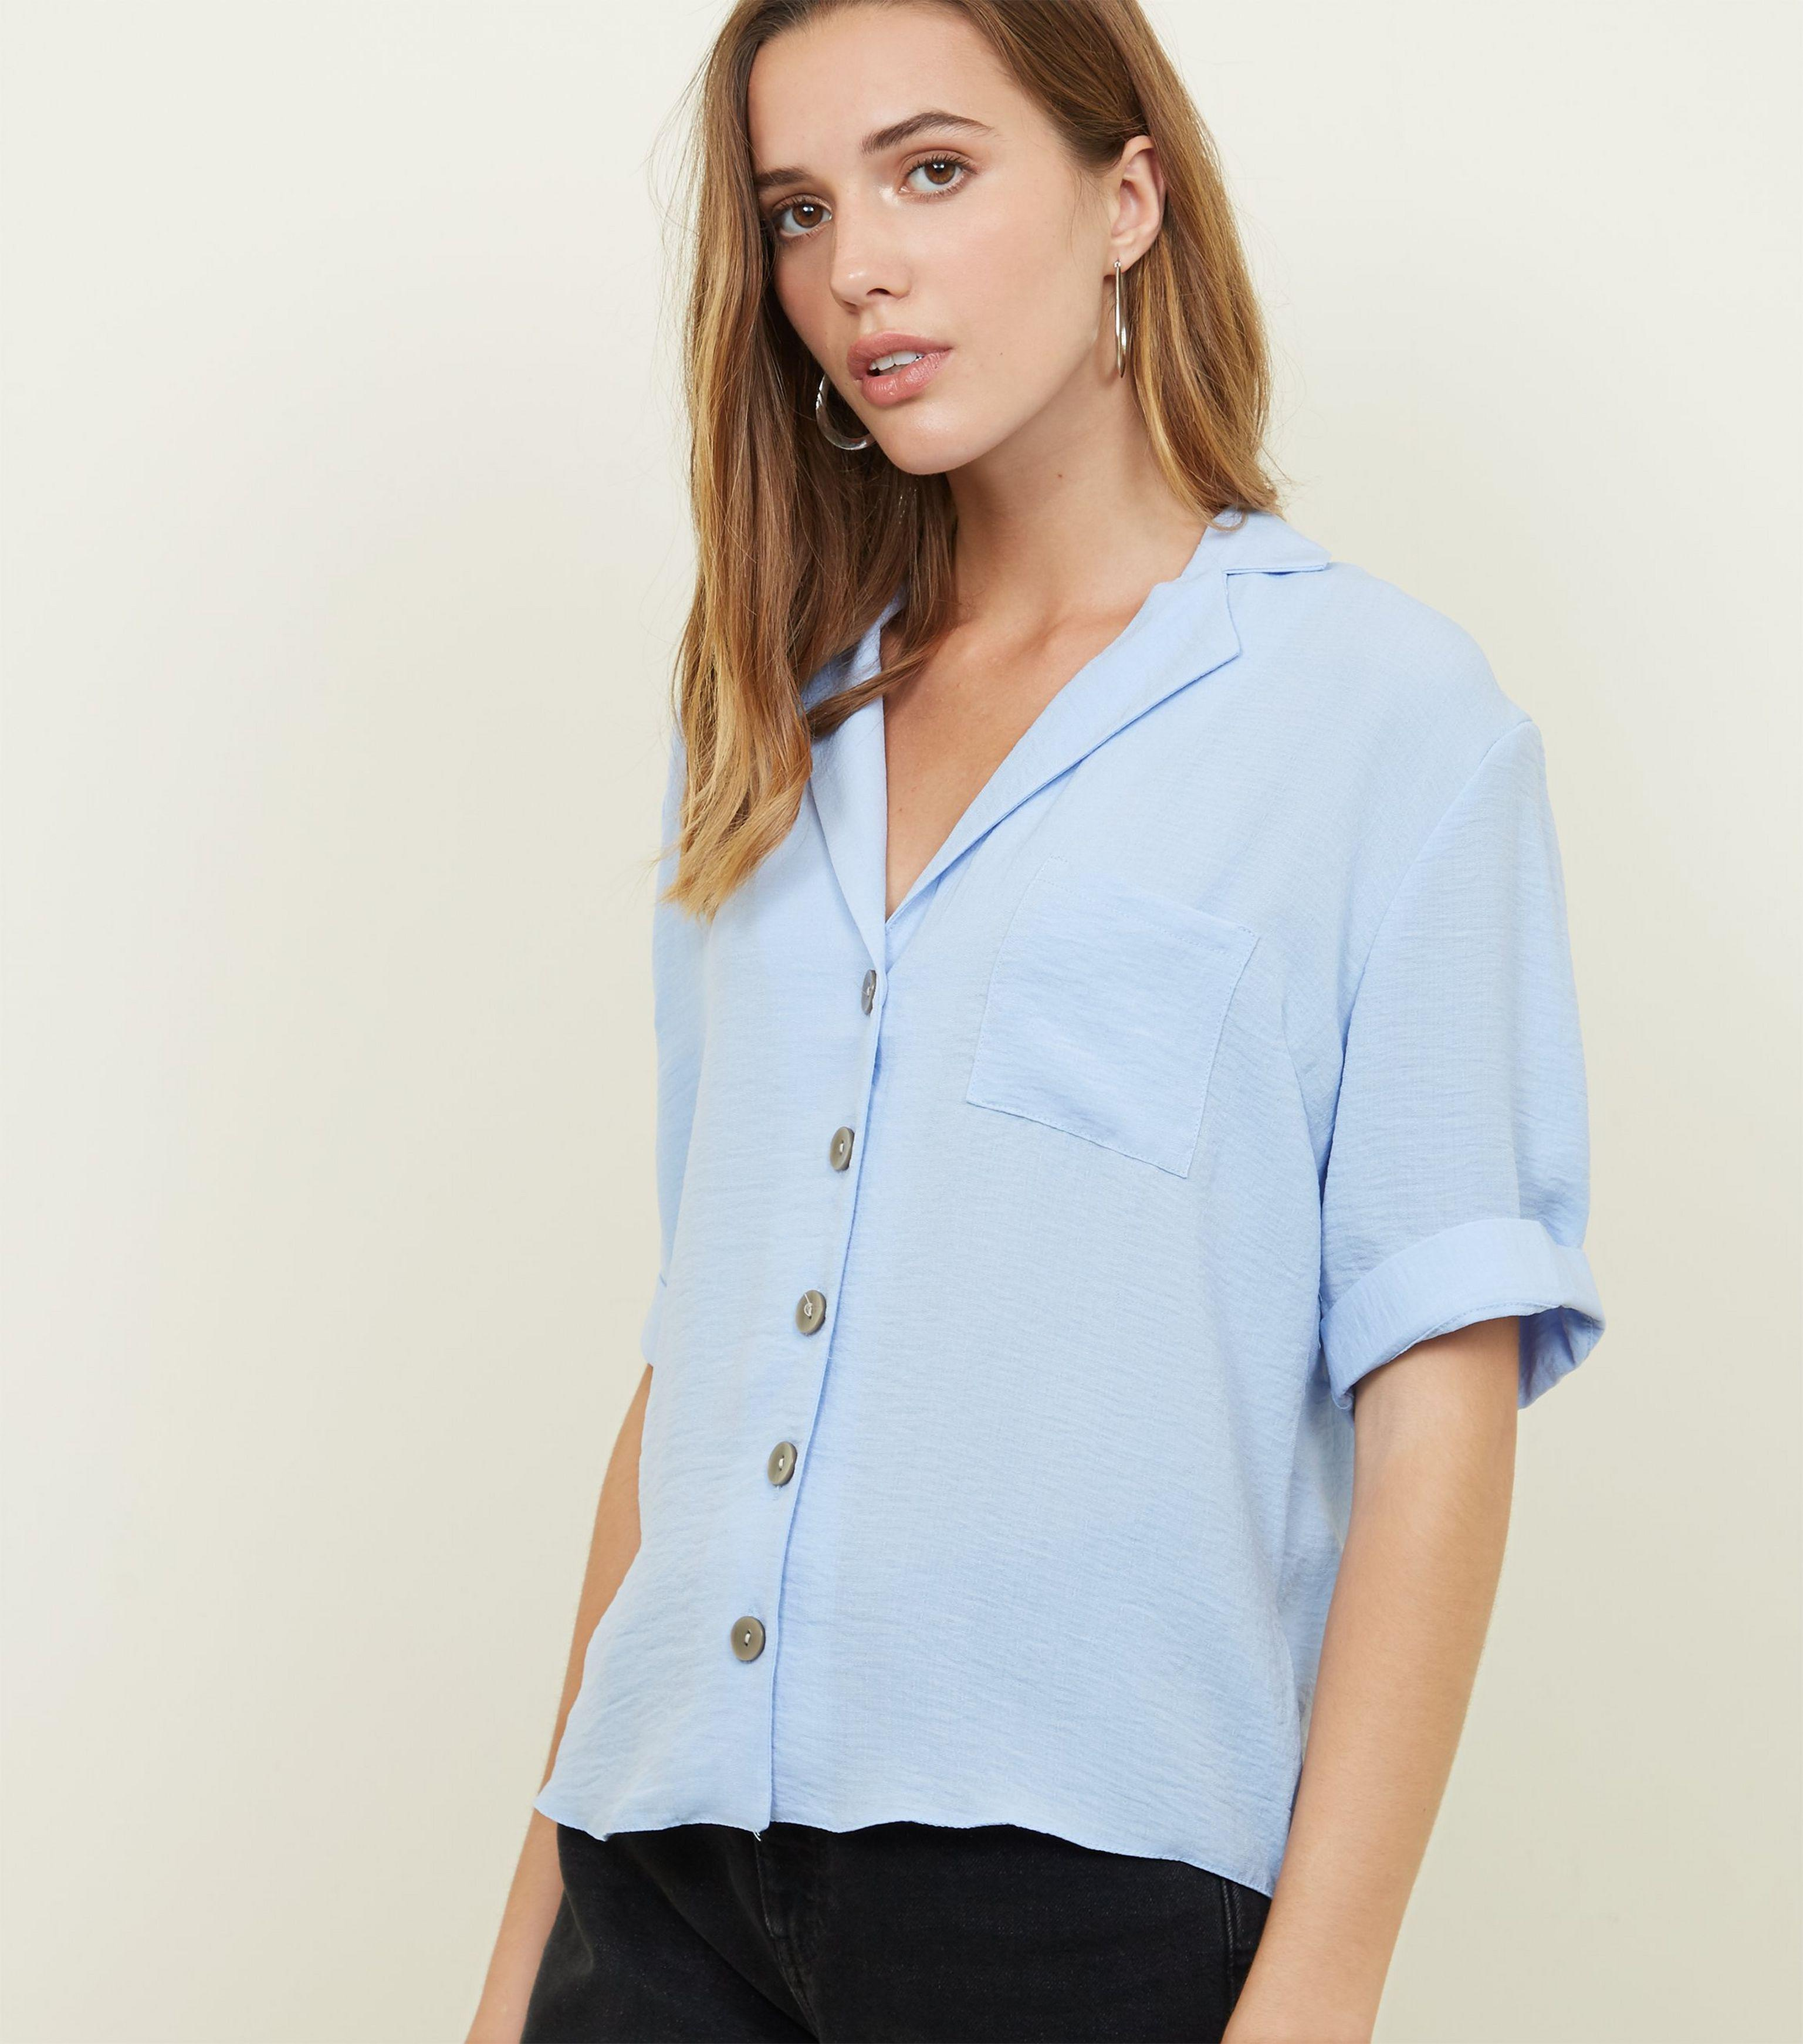 9420b9777c3db New Look Tall Blue Revere Collar Button Front Shirt in Blue - Lyst